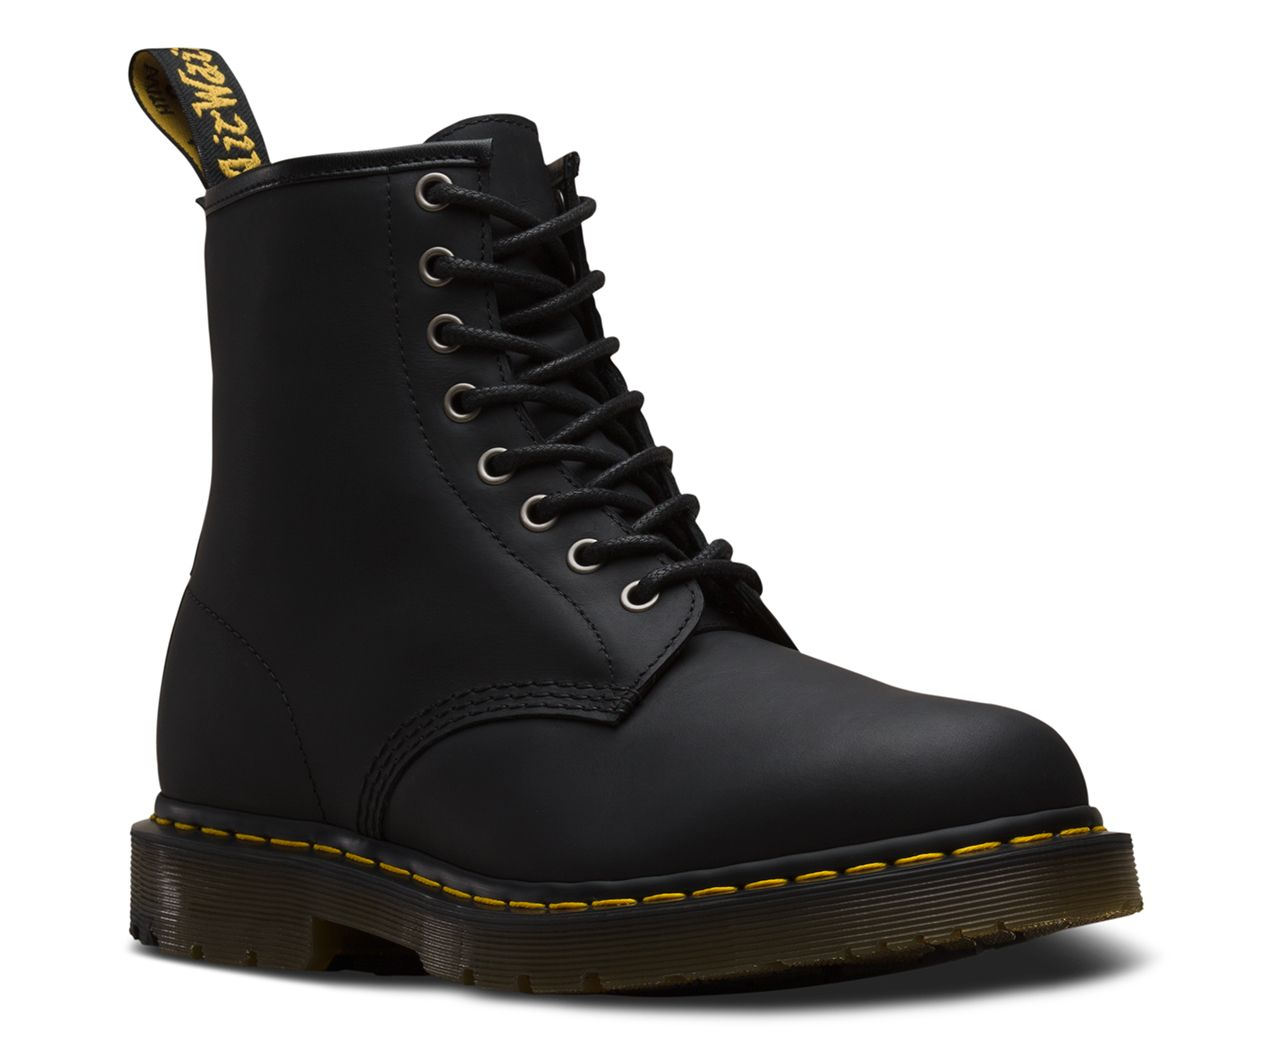 Dr martens 1460 dm's wintergrip lace up boots | Boots, Doc